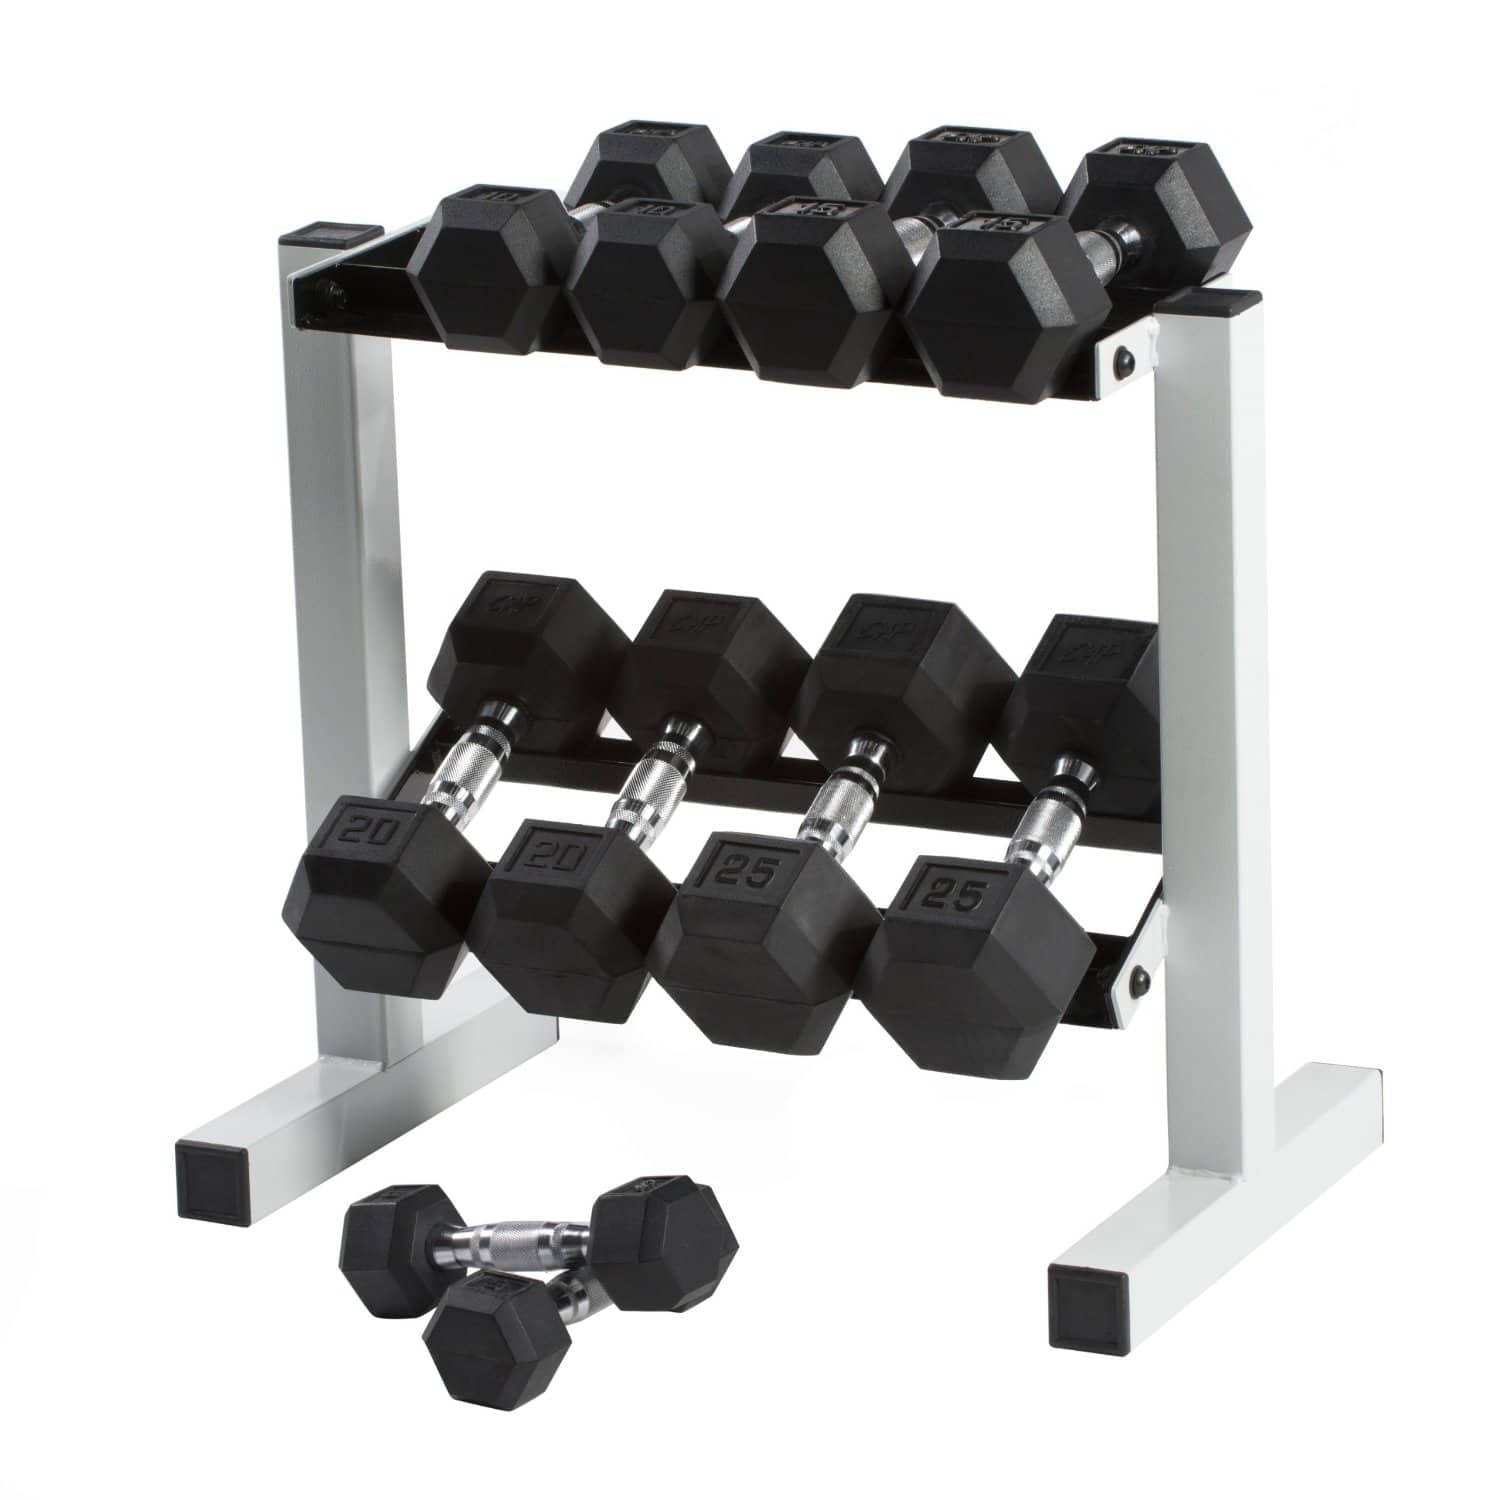 CAP Barbell 150 lb Rubber Hex Dumbbell Set, 5-25 lb with Rack $199 (was $419)